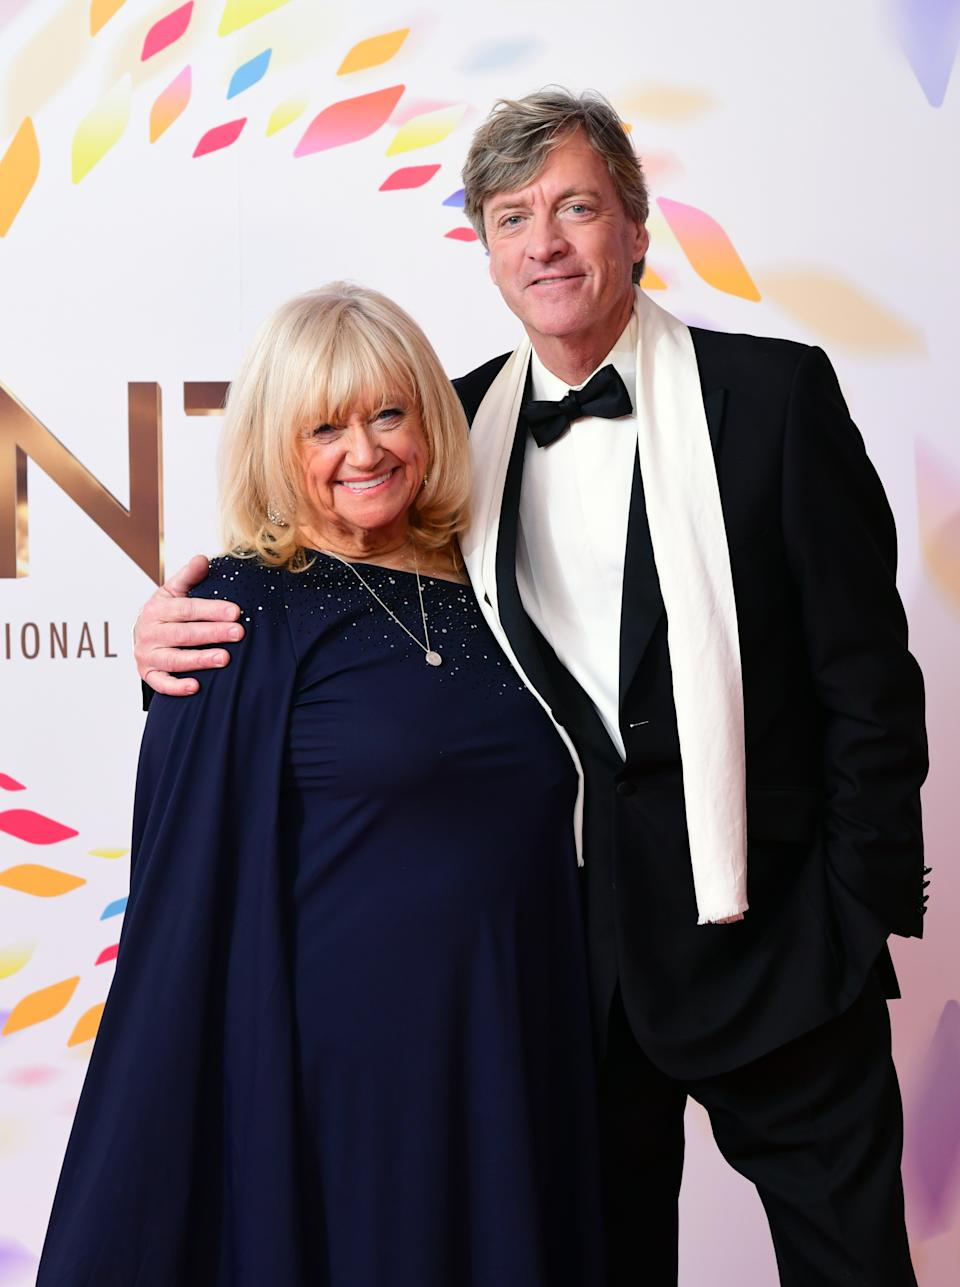 Judy Finnigan (left) and Richard Madeley in the press room during the National Television Awards at London's O2 Arena.